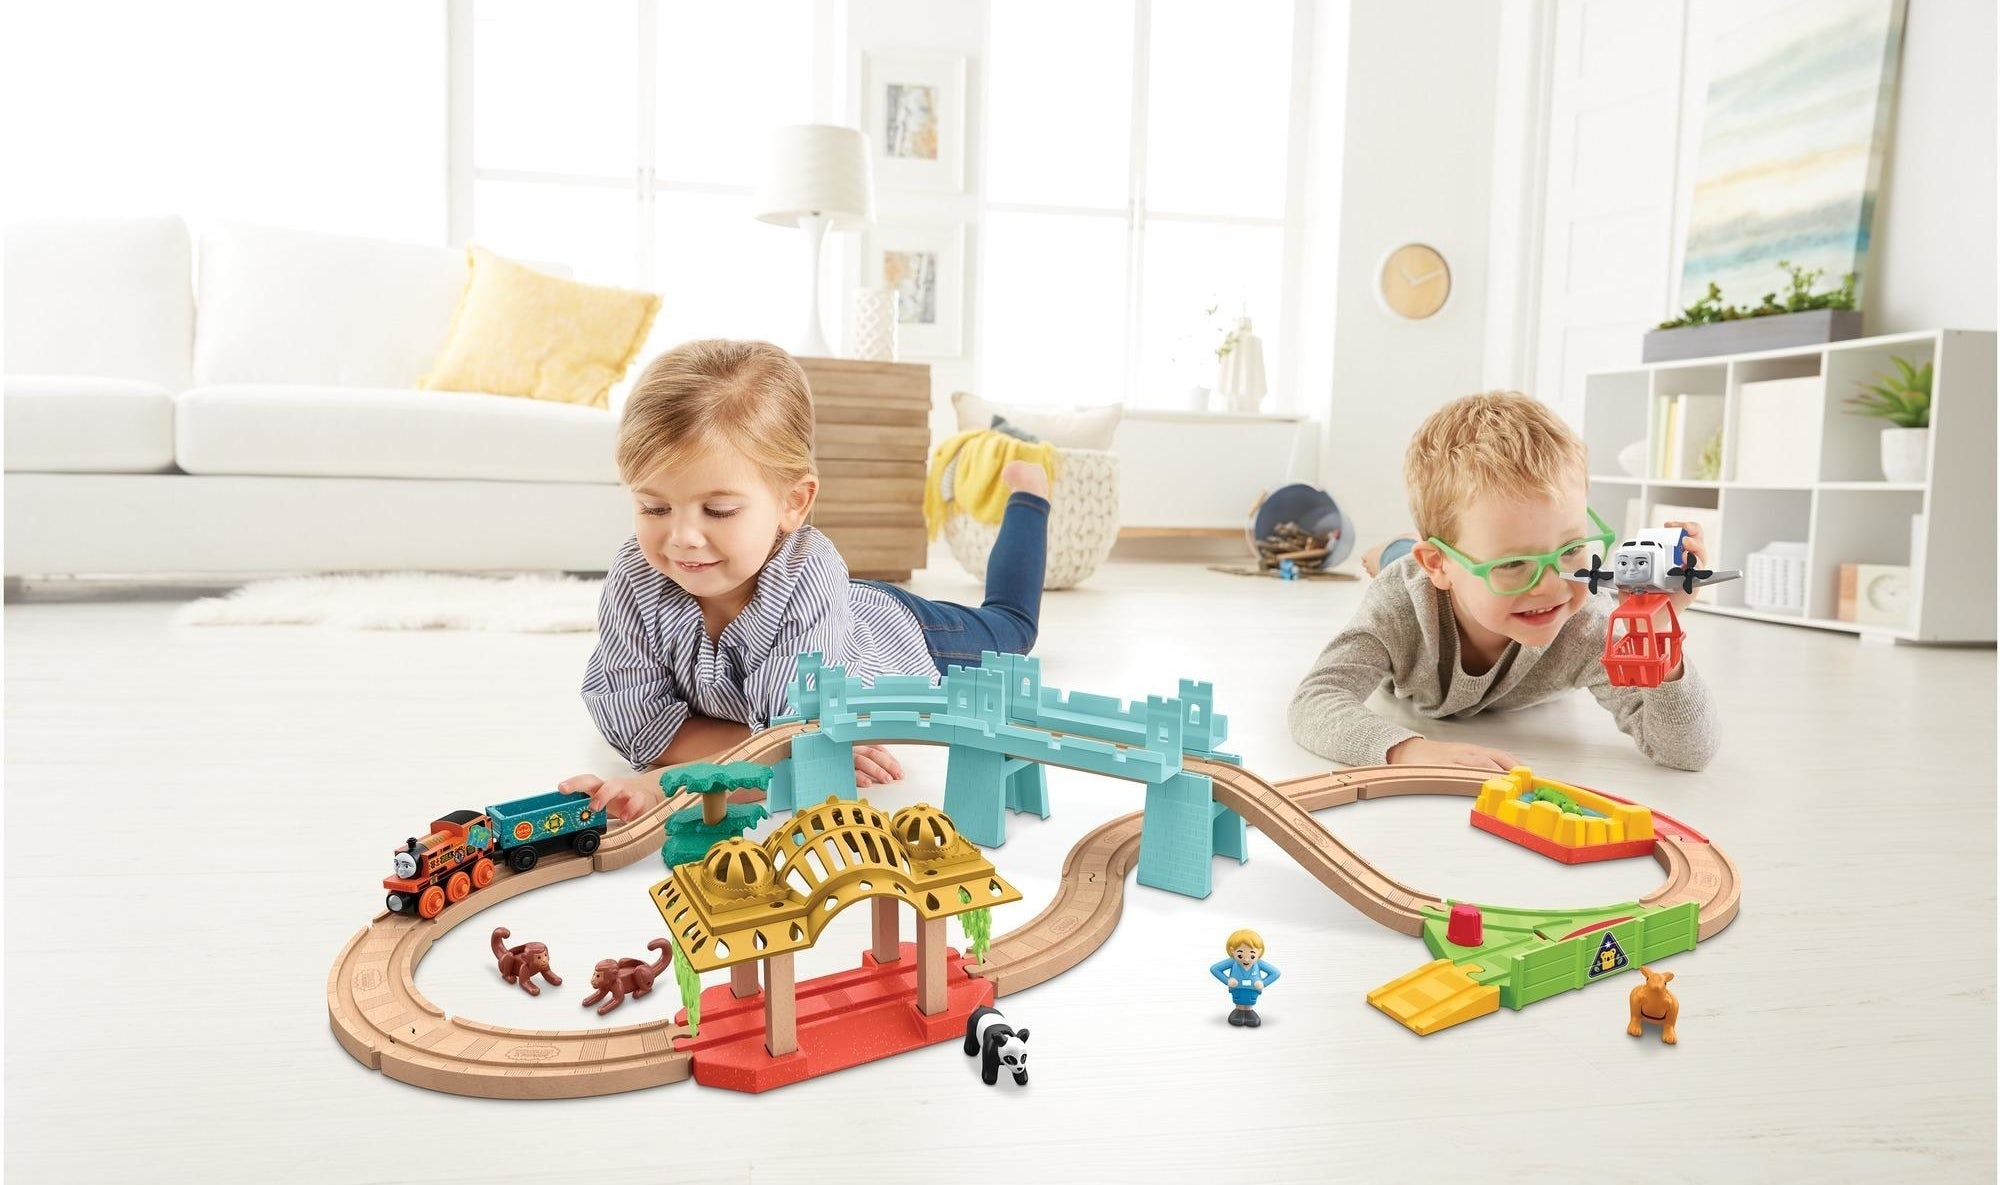 two kids playing with the train set